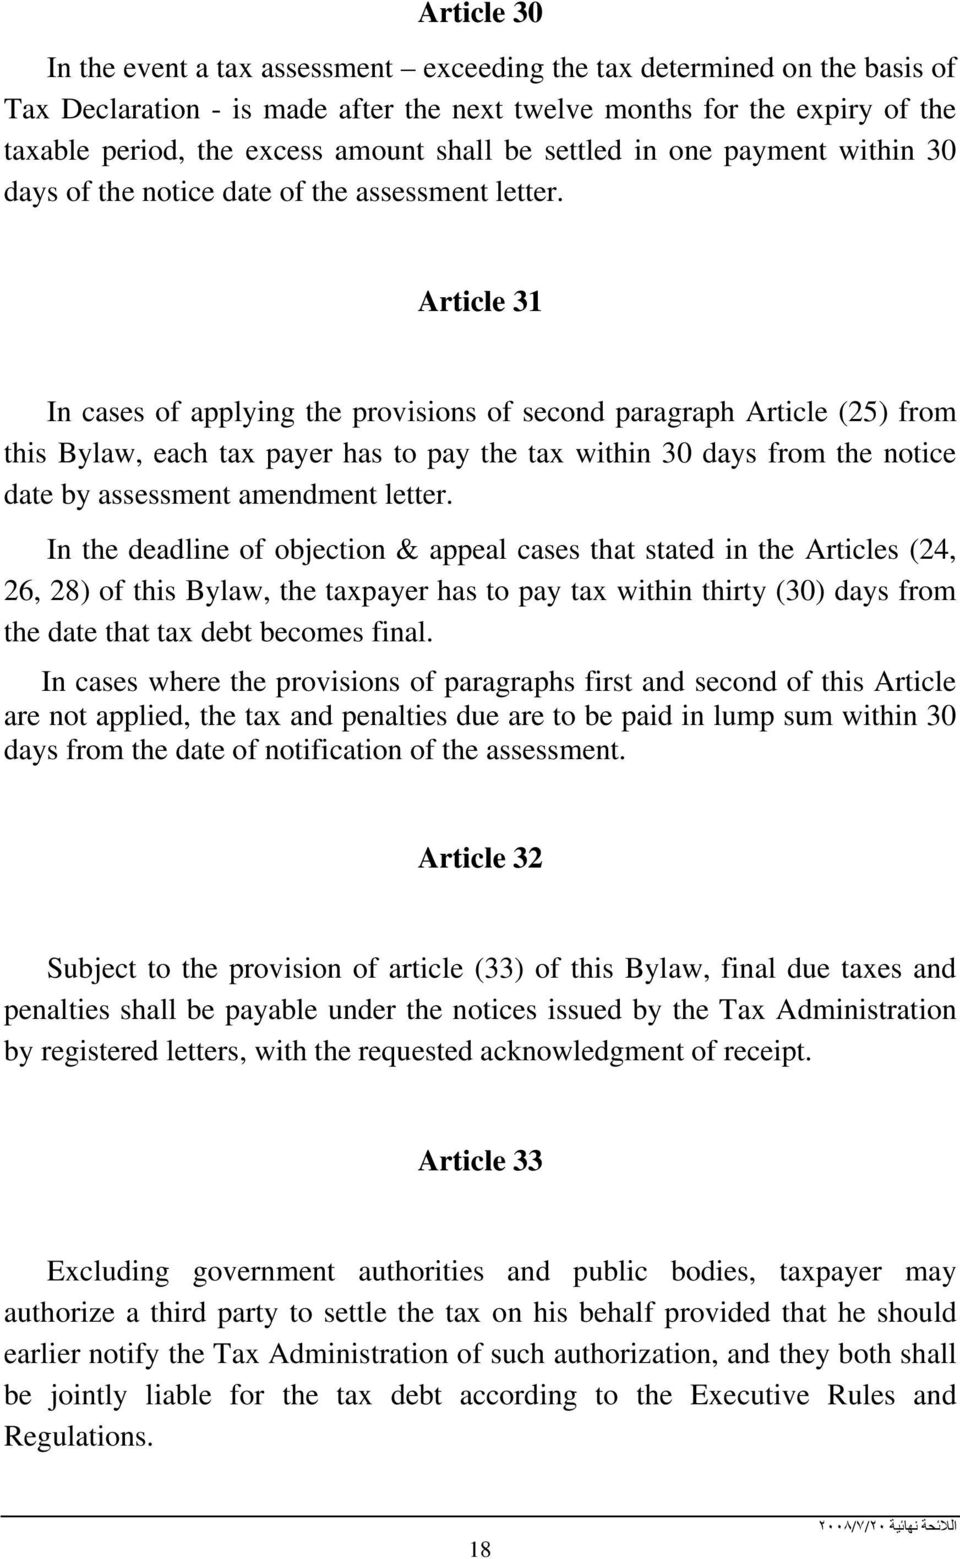 Article In cases of applying the provisions of second paragraph Article (5) from this Bylaw, each tax payer has to pay the tax within 0 days from the notice date by assessment amendment letter.